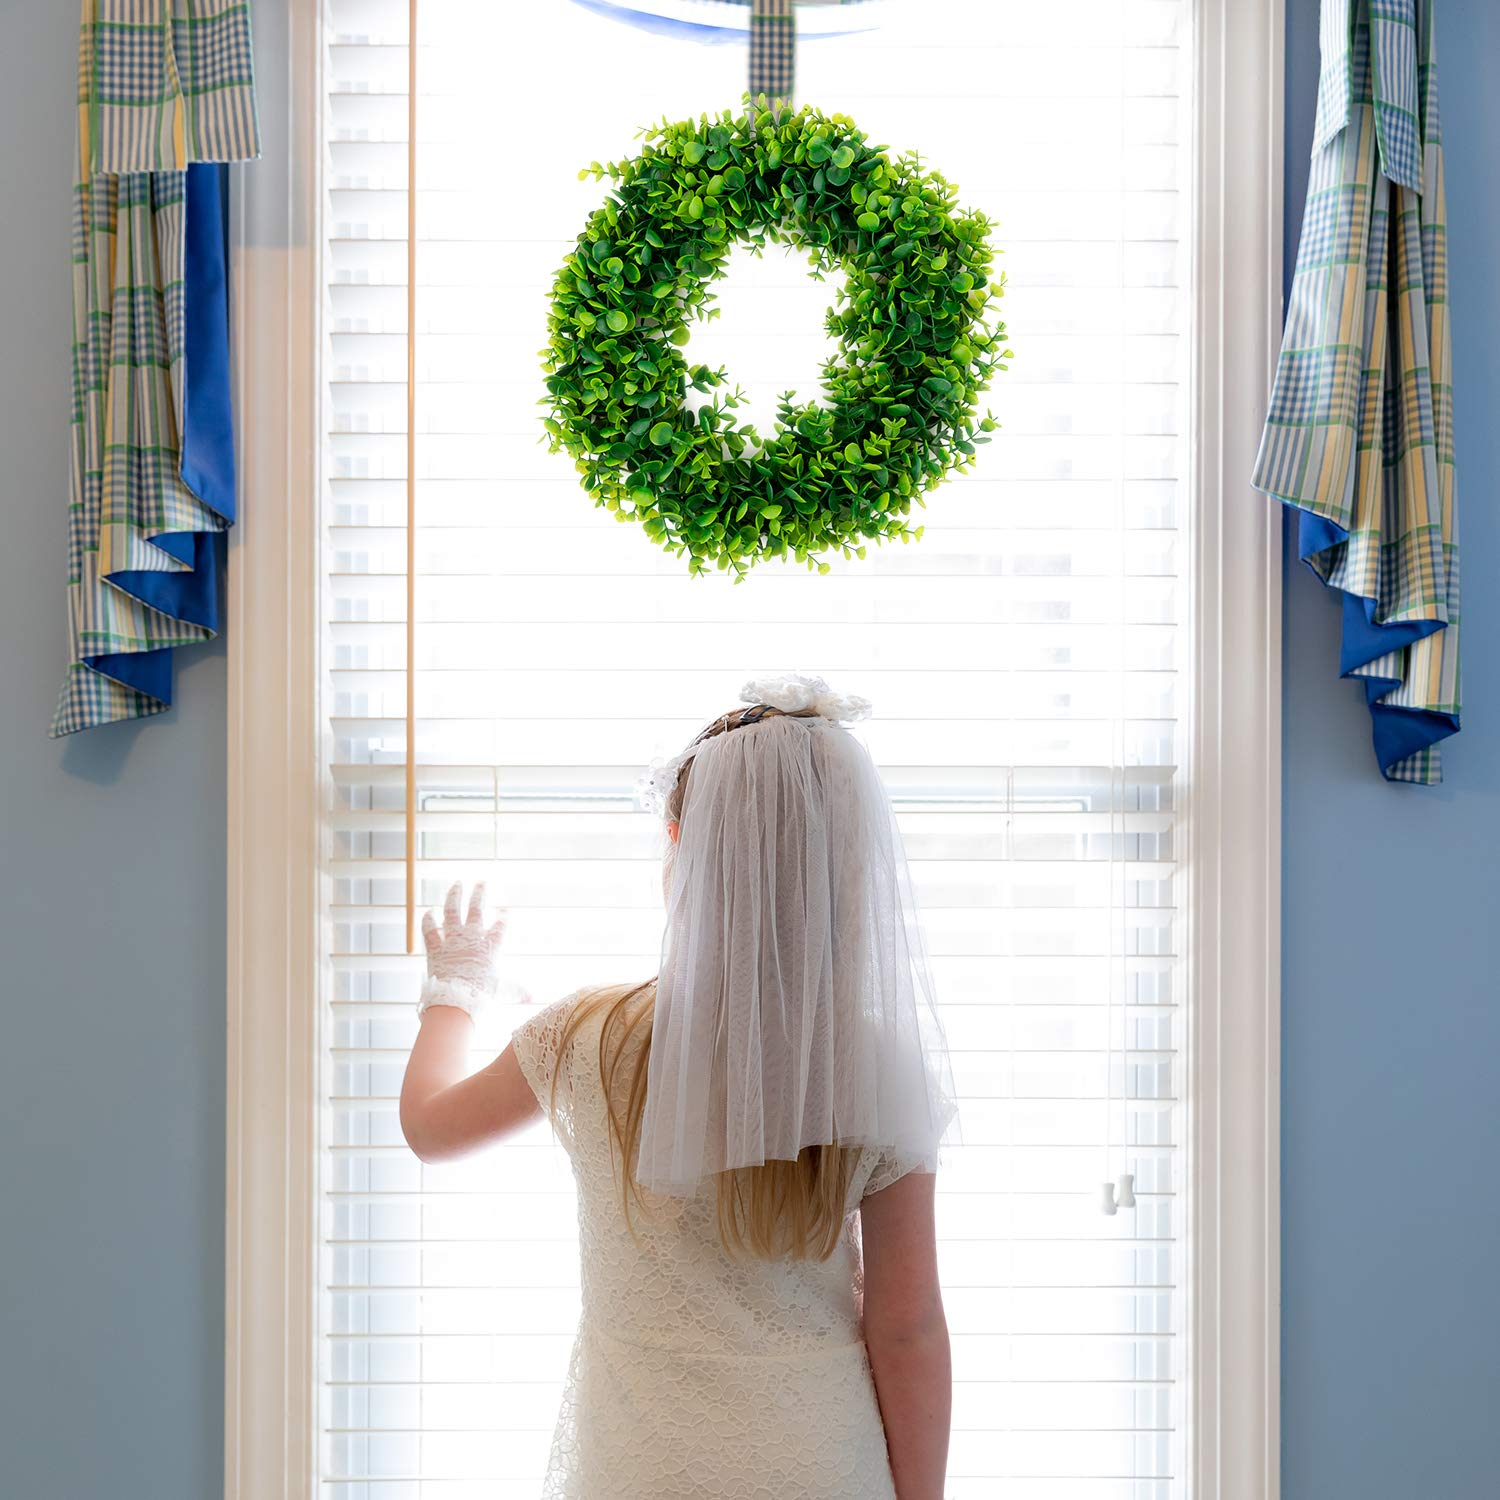 Bhappy Artificial Green Leaves Wreath Boxwood Wreath Eucalyptus Wreath Lavender Wreath 15 inches for Outdoor Indoor Front Door Home Wall Window Wedding Farmhouse D/écor